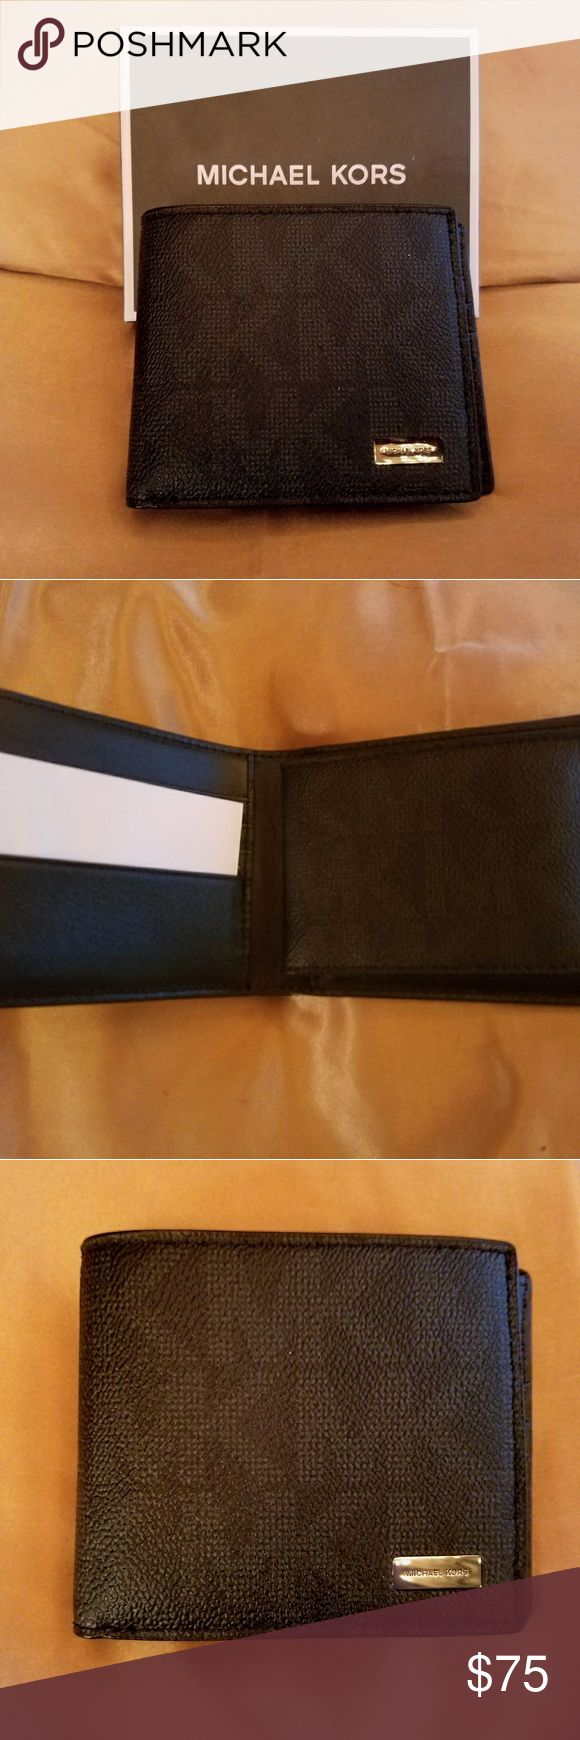 Michael Kors Wallet NWT New with tags! Black leather monogramed mens bifold wallet. Michael Kors Accessories